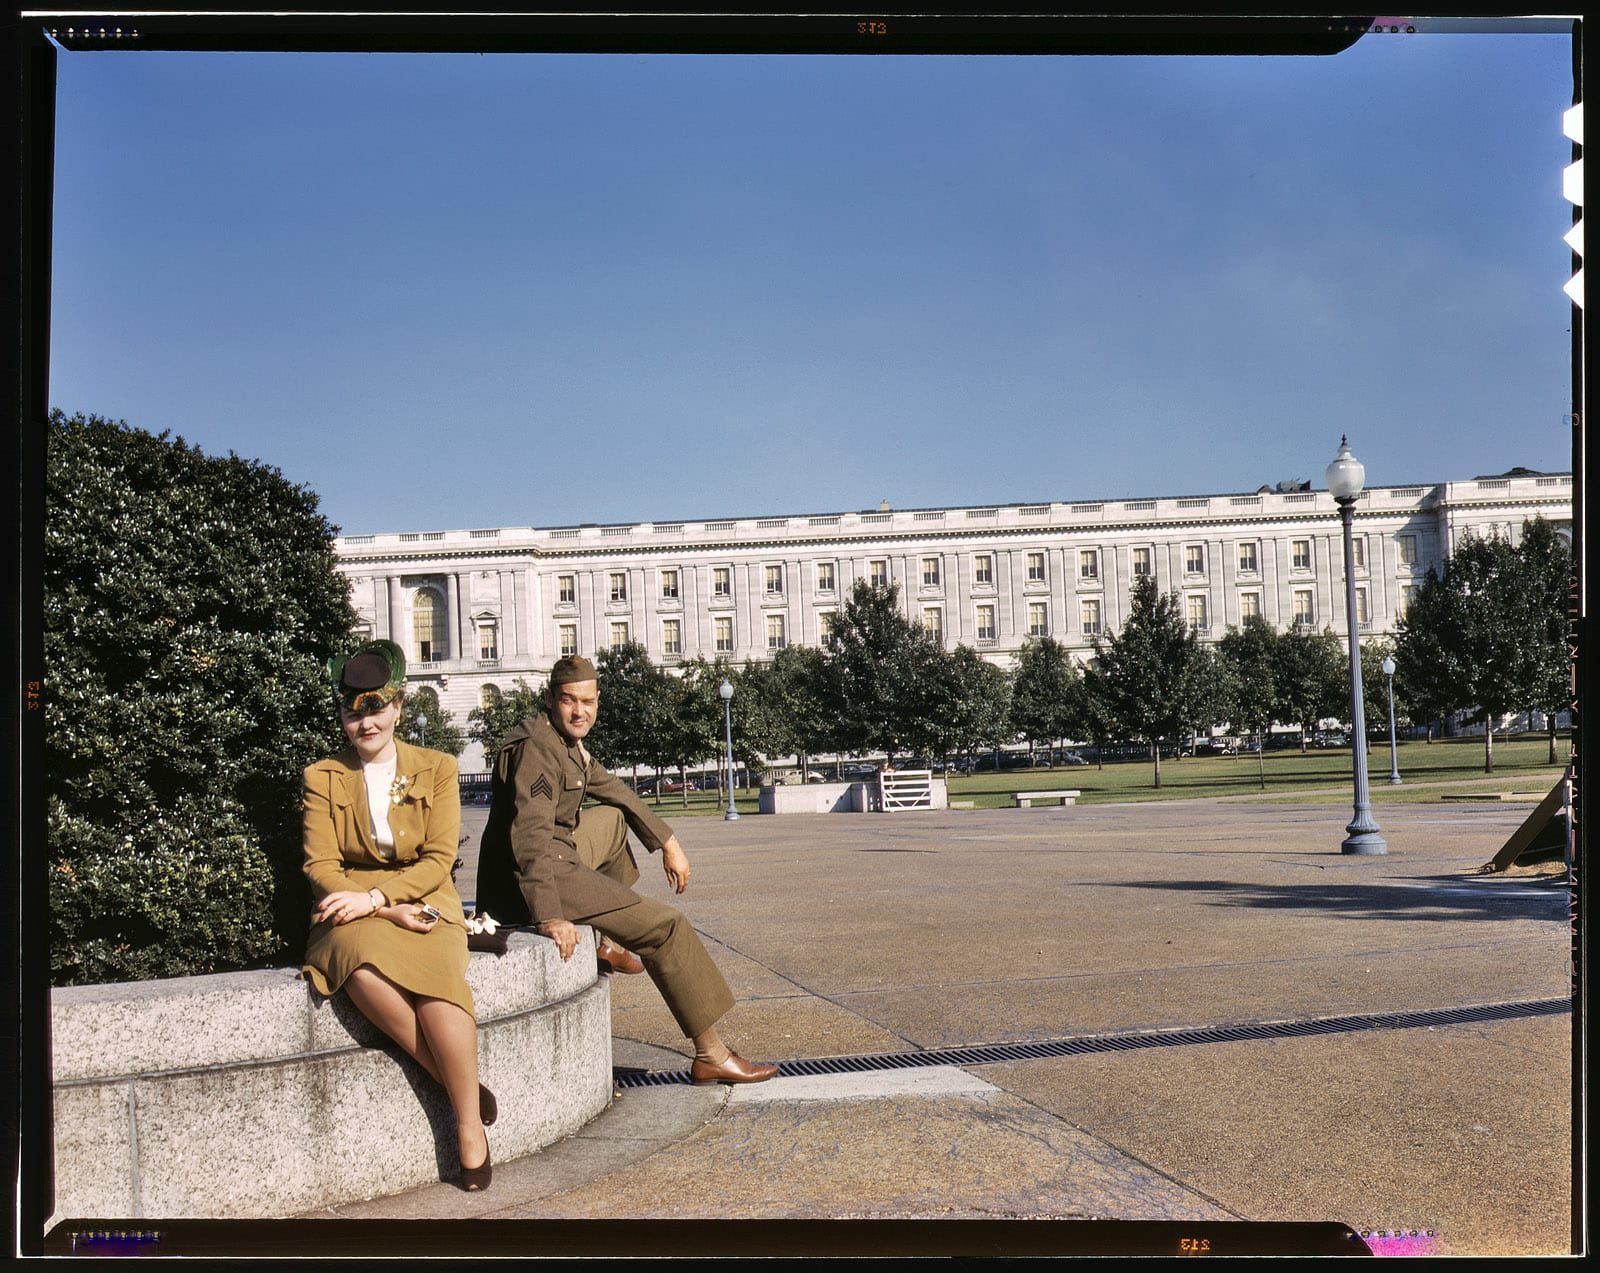 "1943. On maneuvers in wartime Washington. ""A soldier and a woman in a park, with the Old [Russell] Senate Office Building behind them."" 4x5 Kodachrome transparency, photographer unknown. Office of War Information."